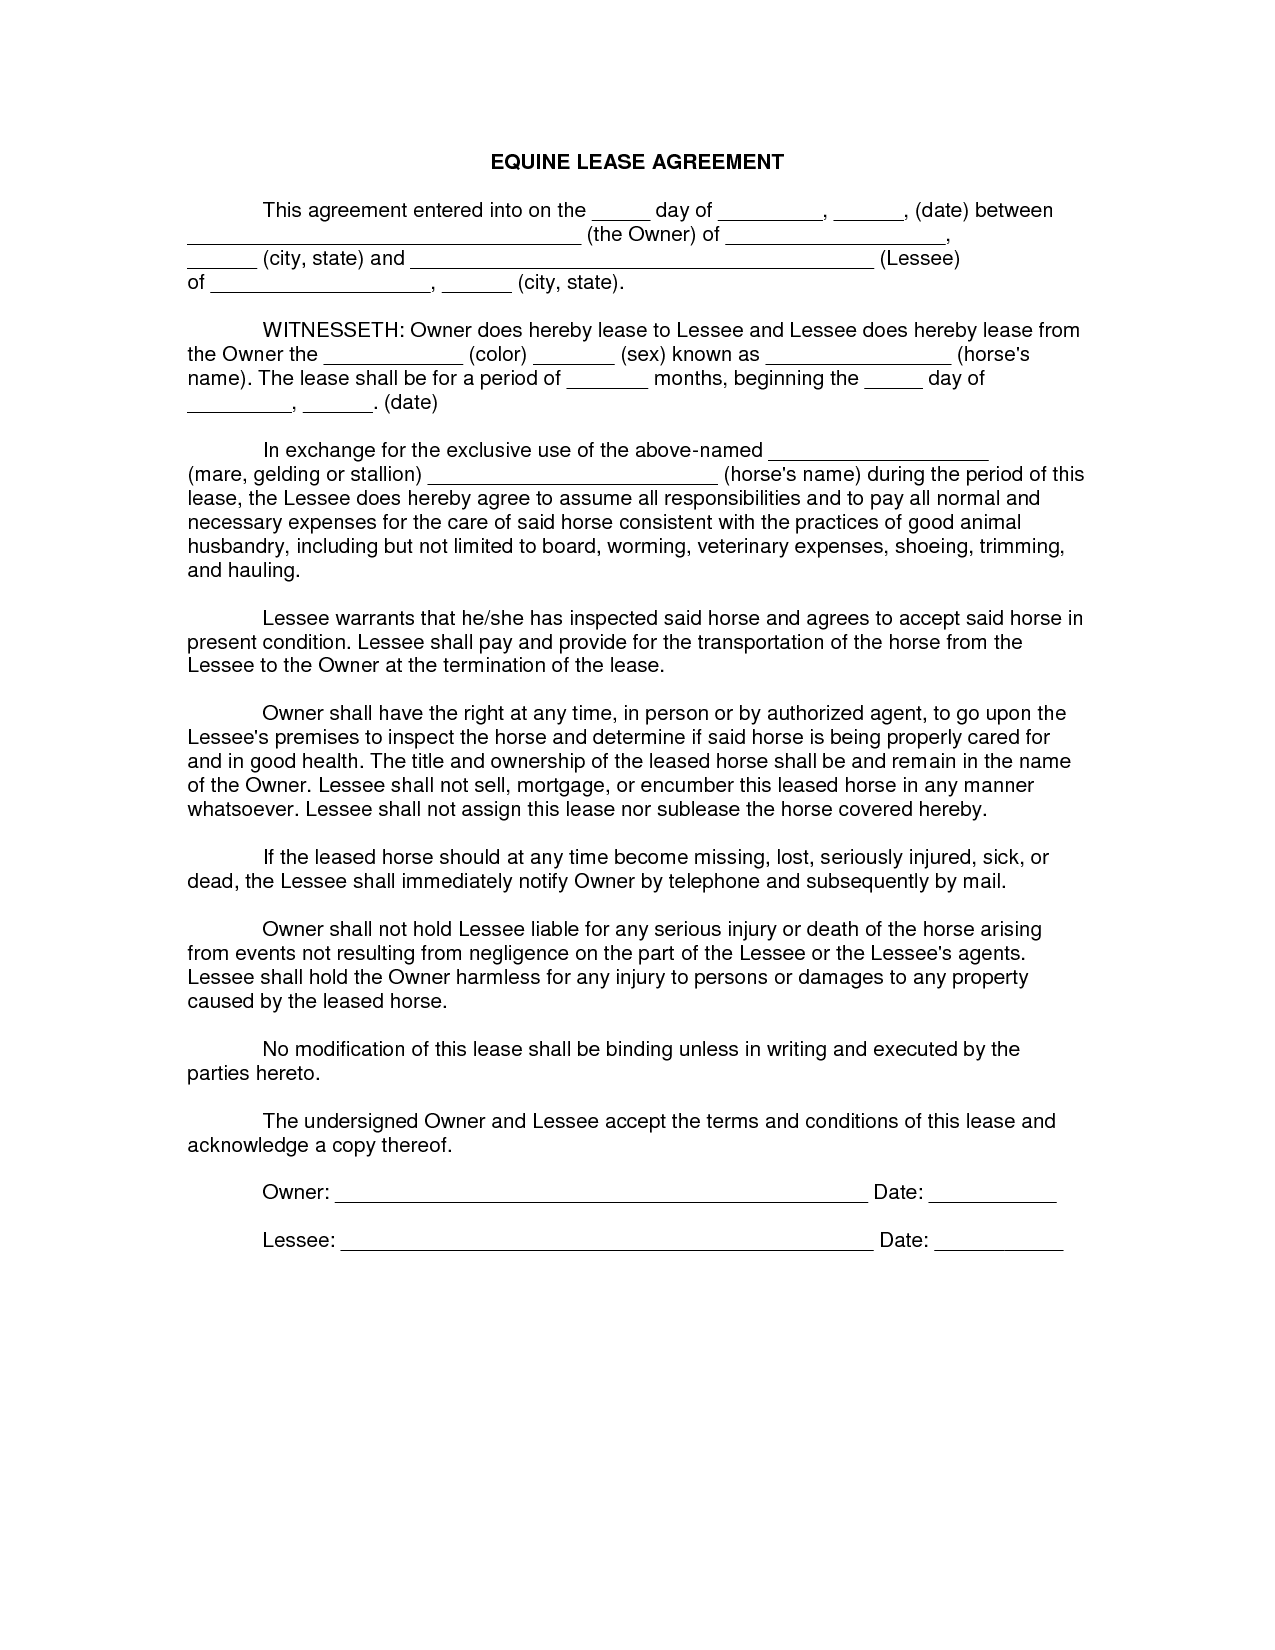 lease agreement contract by bgf31721 sublease agreement contract – Lease Agreement Contract